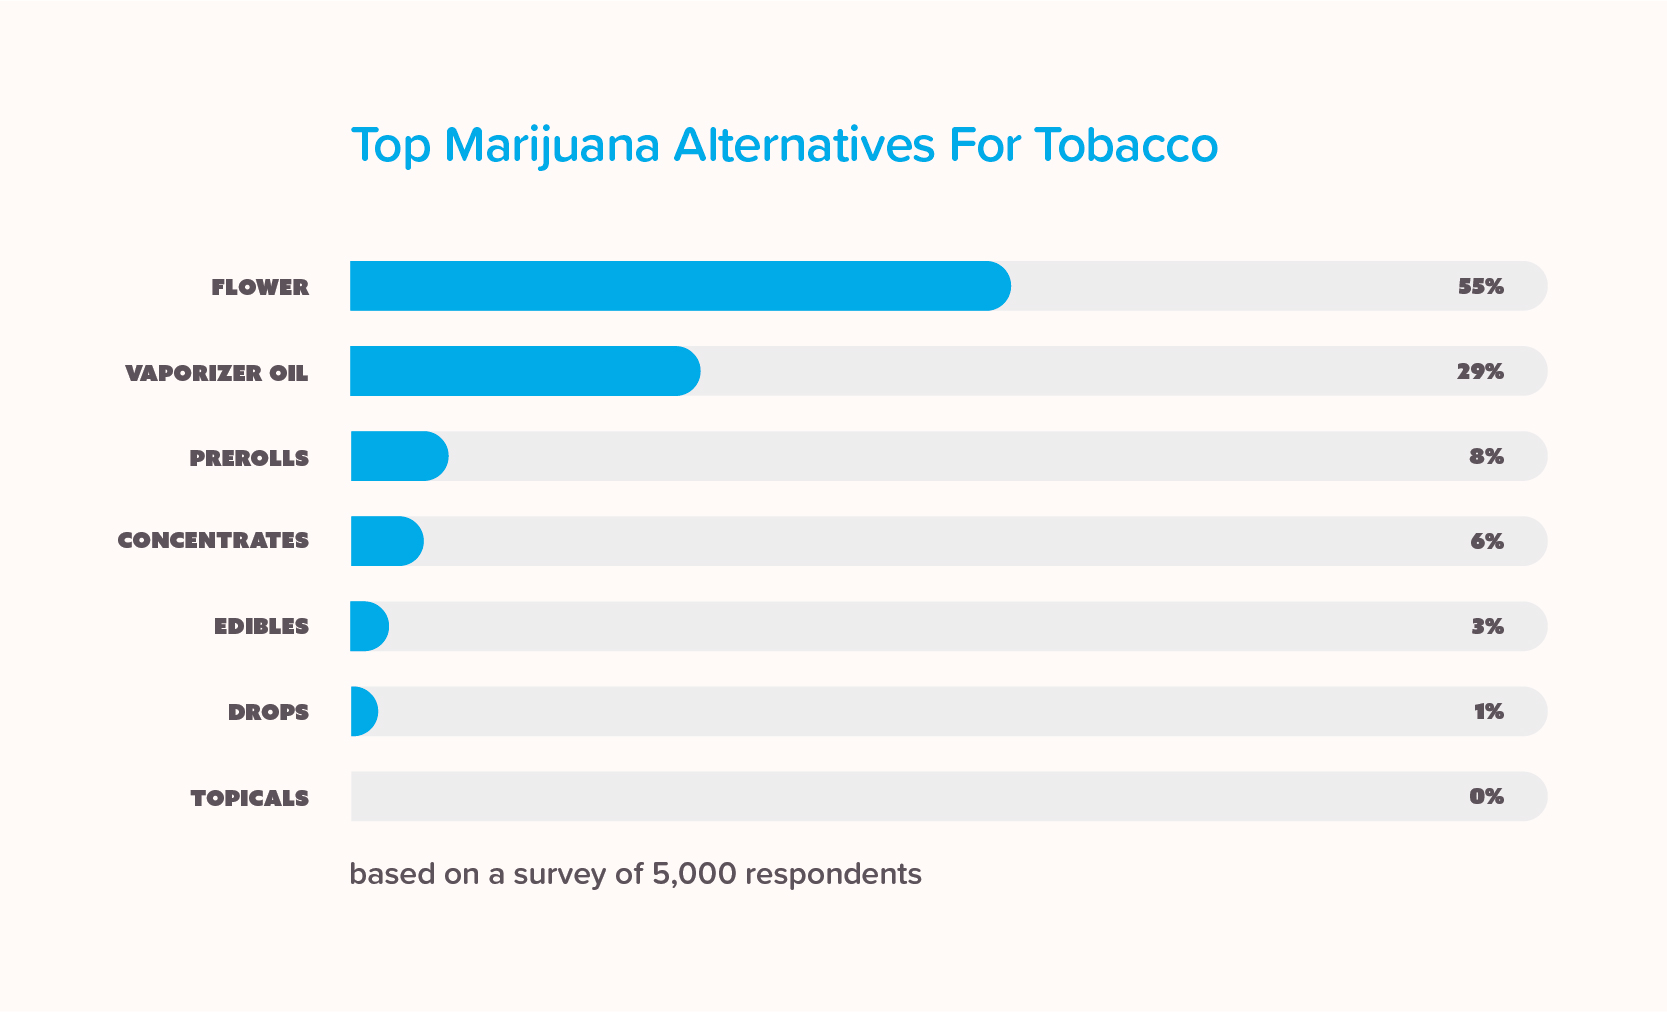 Infographic showing the top marijuana alternatives for tobacco